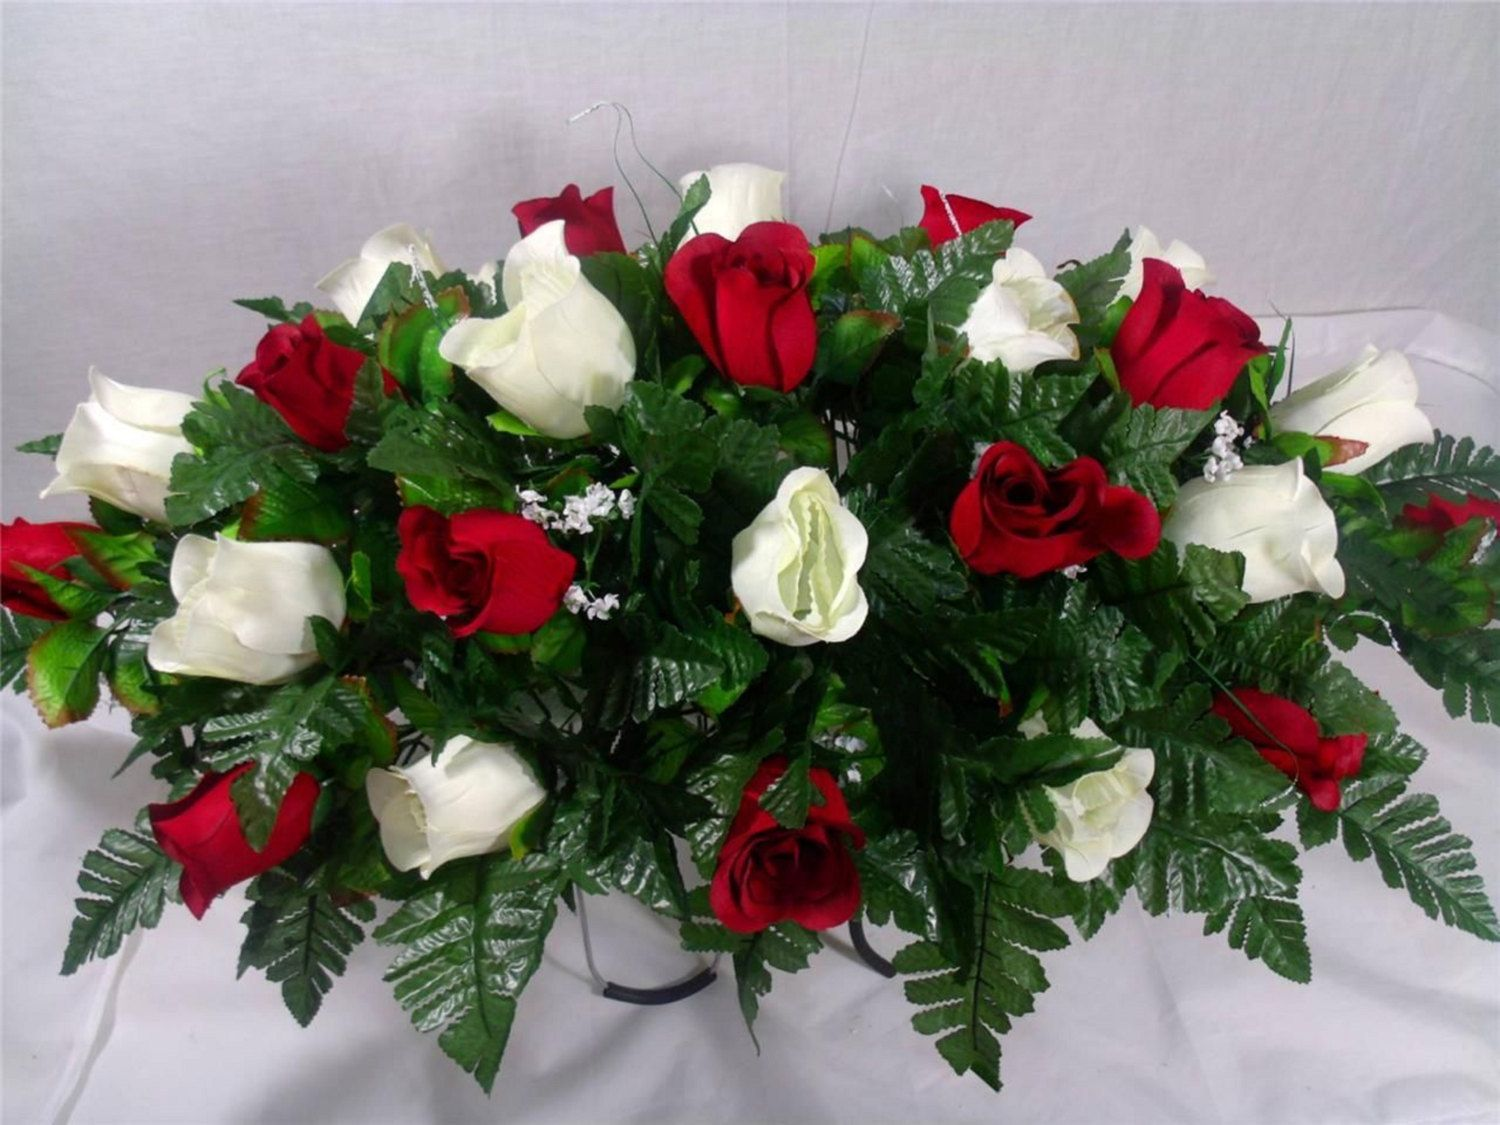 Xl red white roses silk flower cemetery tombstone saddle red white roses silk flower cemetery tombstone saddle arrangement by crazyboutdeco on etsy mightylinksfo Choice Image